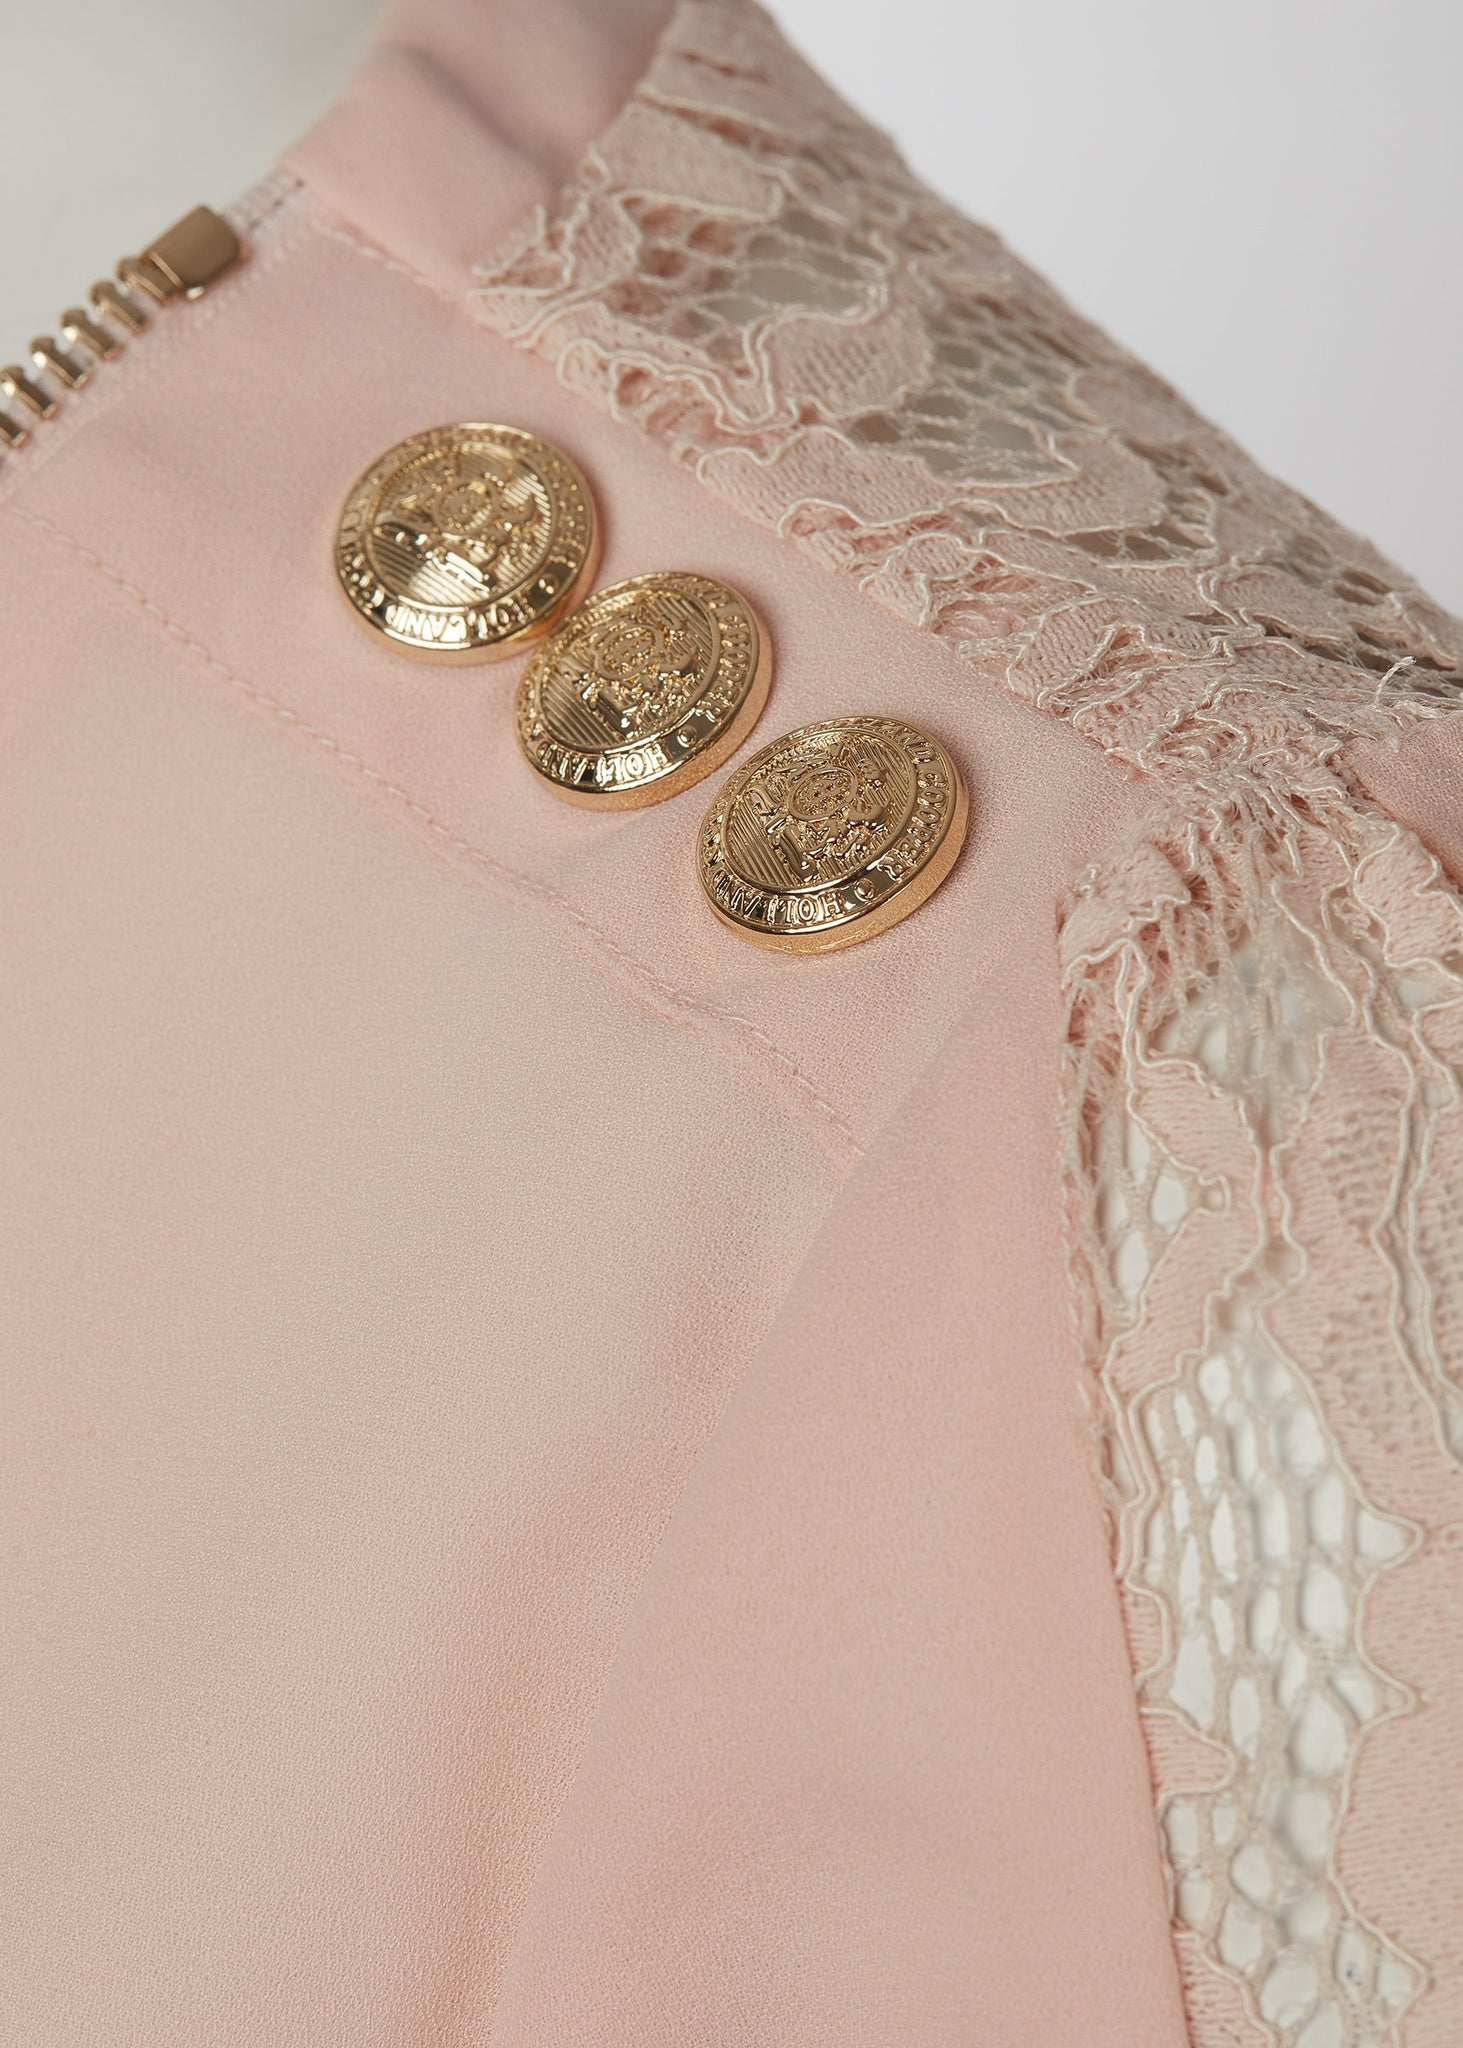 Lace Zip Shirt (Blush)